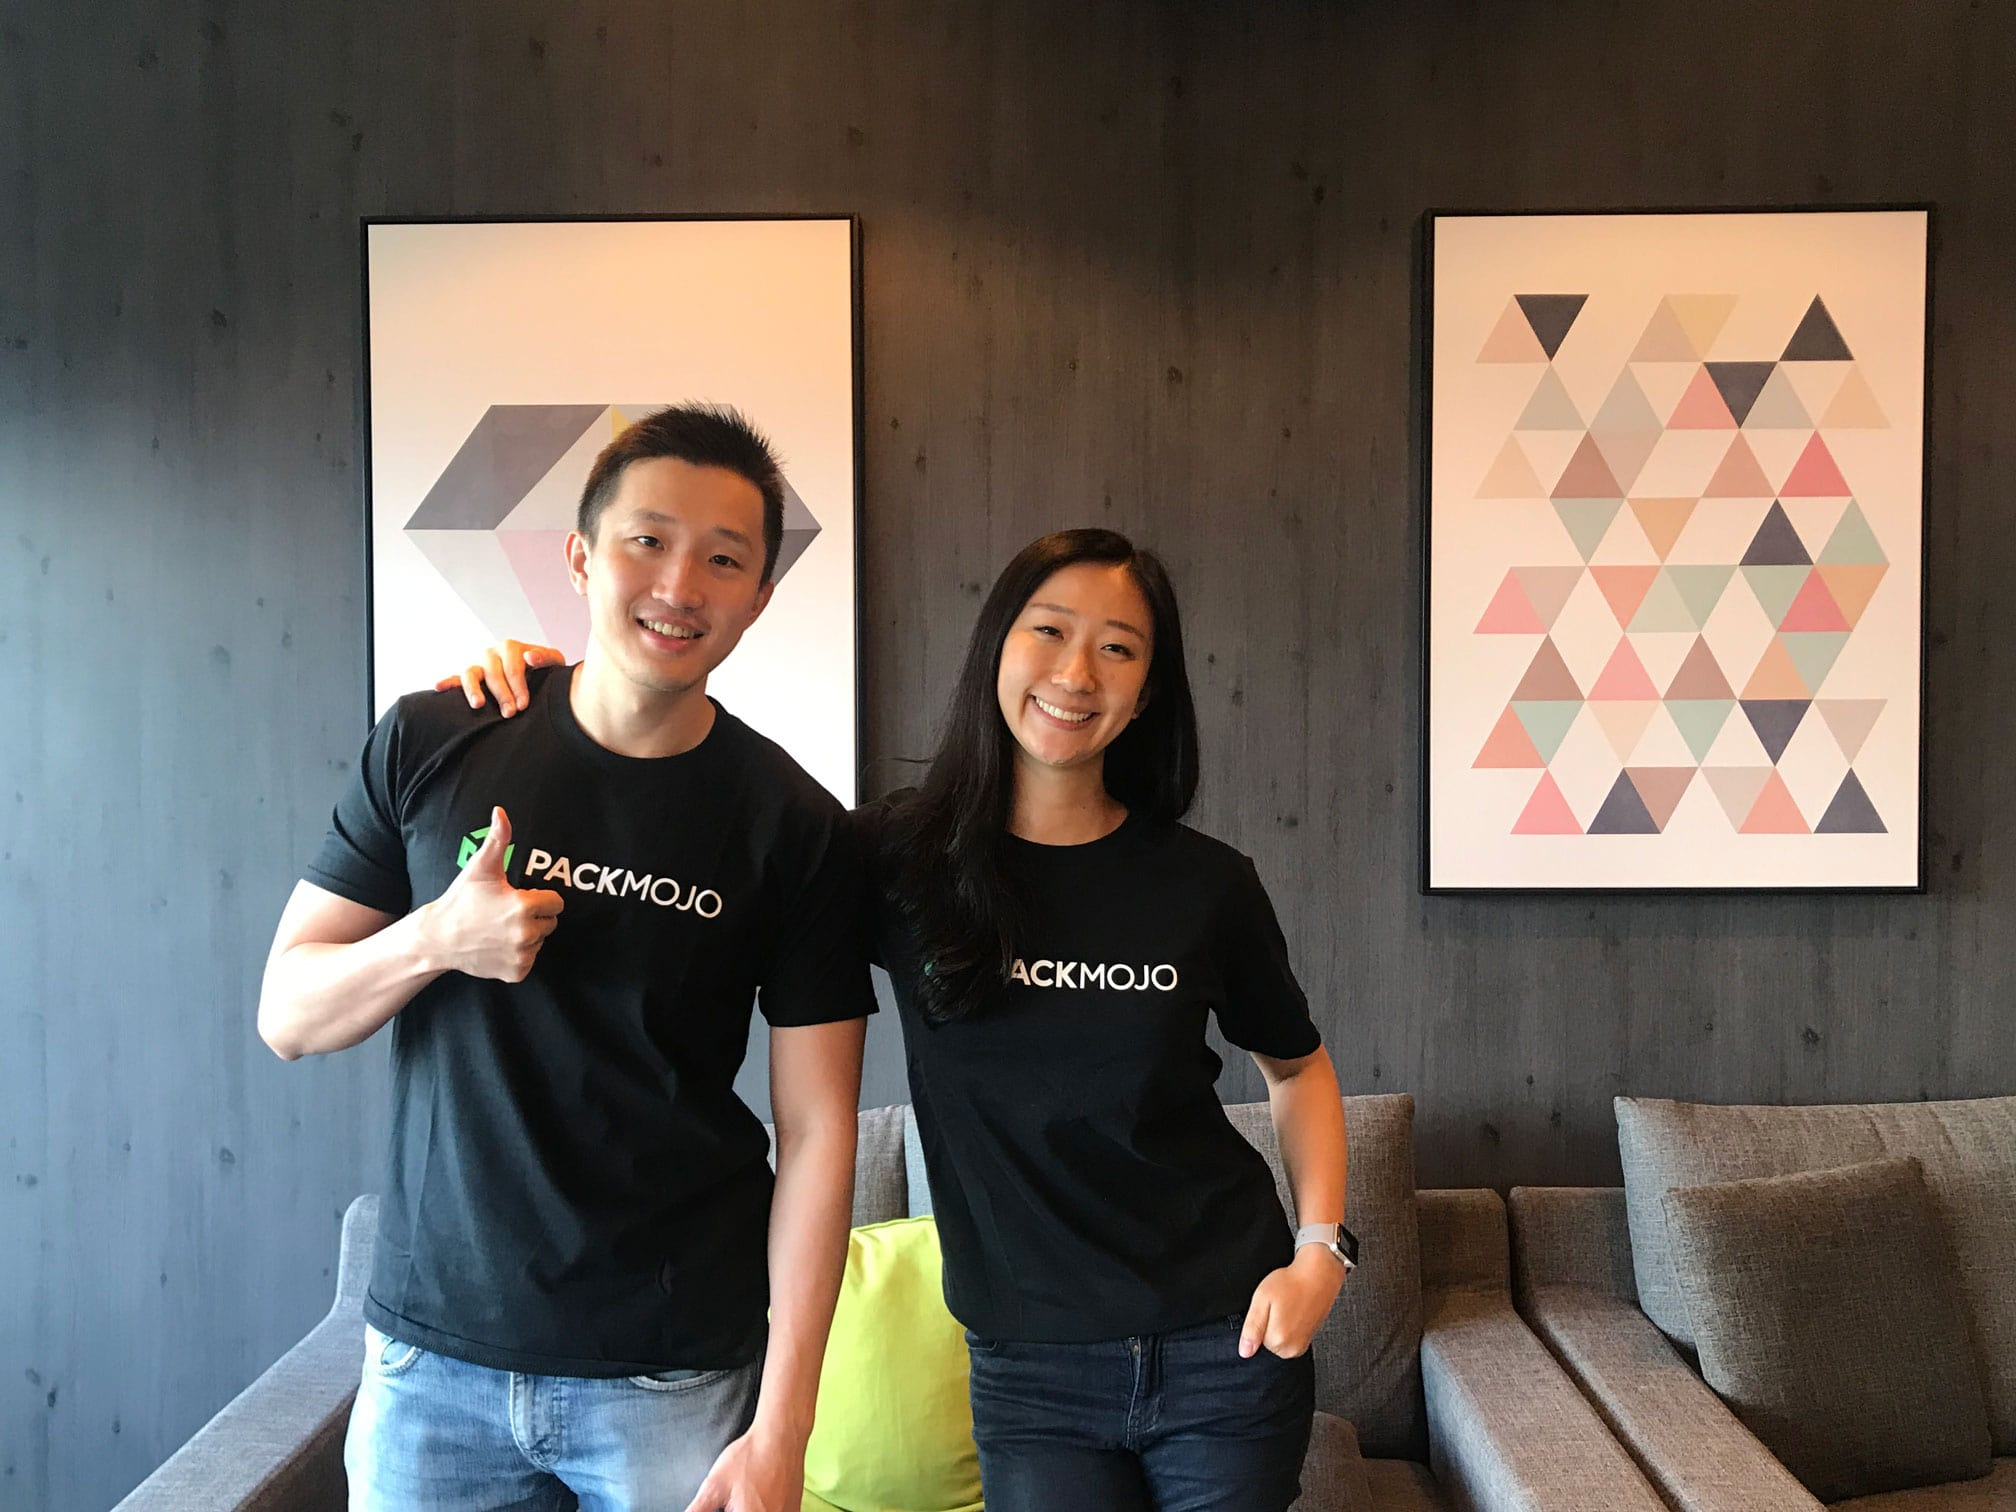 PackMojo Founders - Vincent Choi and Wendy Chan